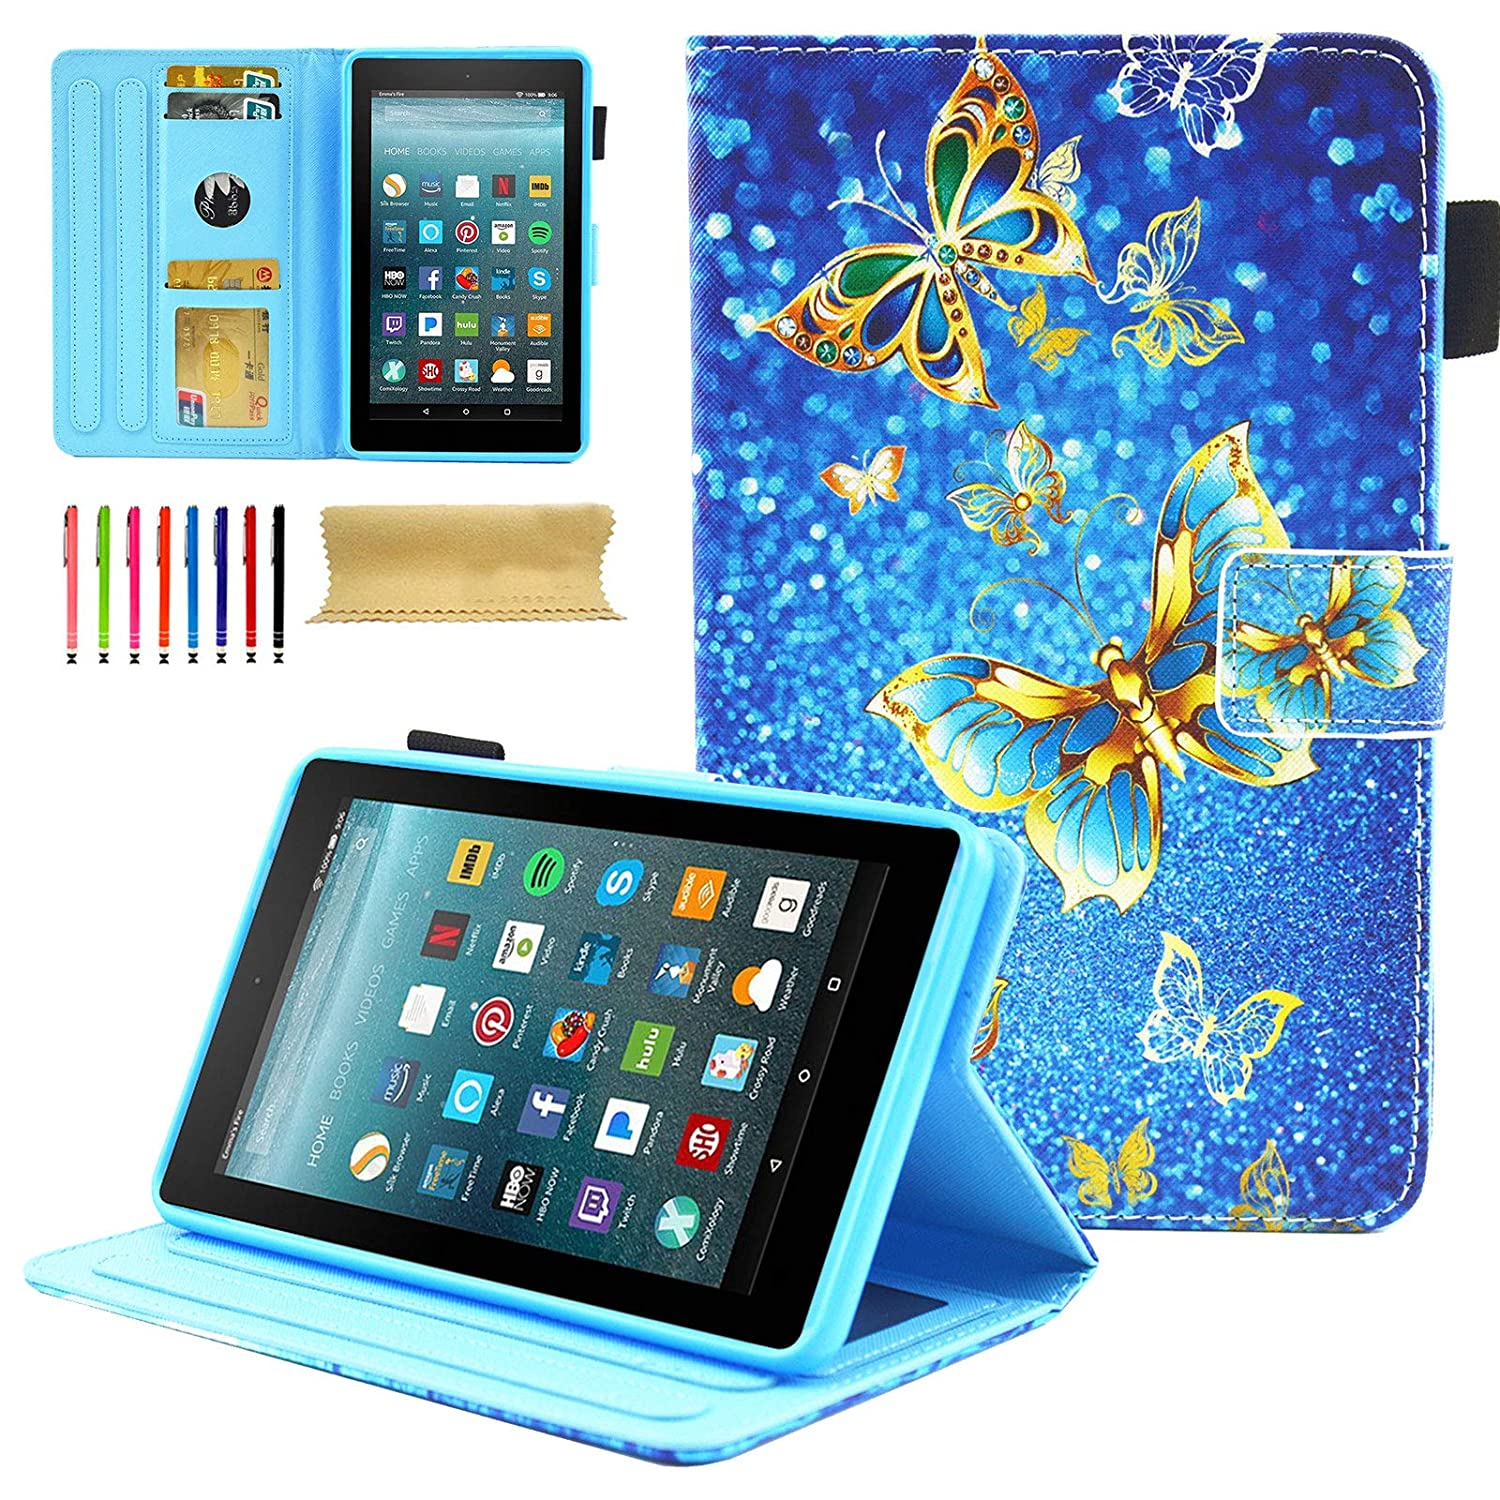 Kindle Fire 7 2017 (7th Generation)/ Fire 7 2015 (5th Generation) Kids  Case, Coopts PU Leather Stand Protective Wallet Cases and Covers for Amazon